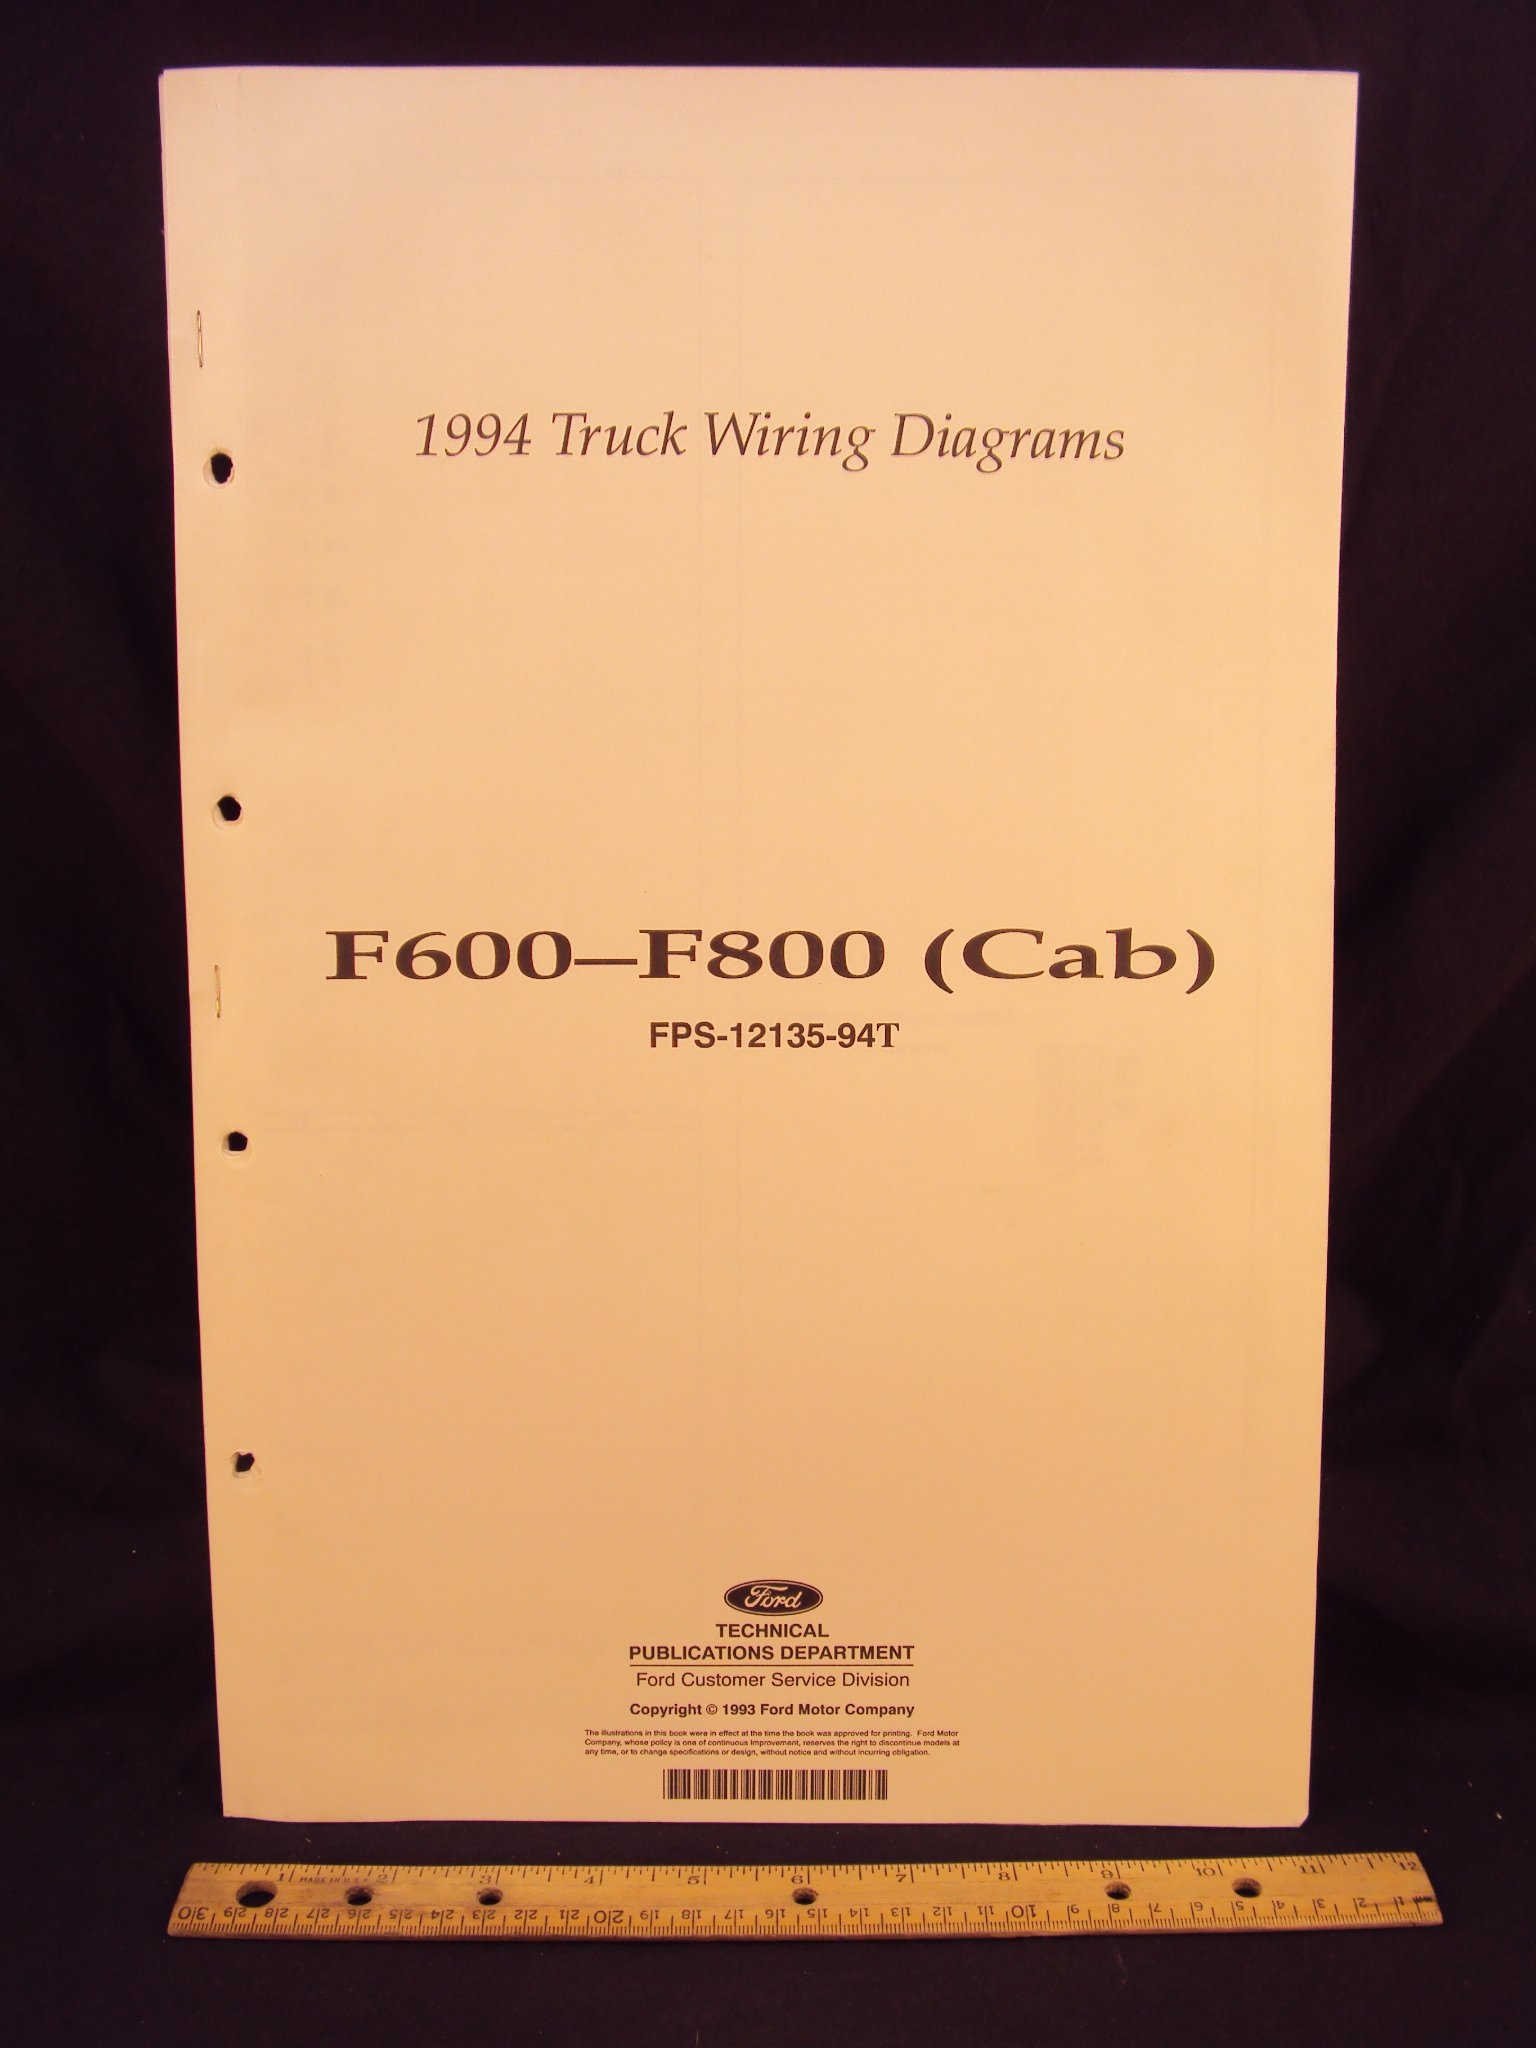 1994 ford f600, f700, & f800 series cab truck electrical wiring diagrams /  schematics loose leaf – january 1, 1993